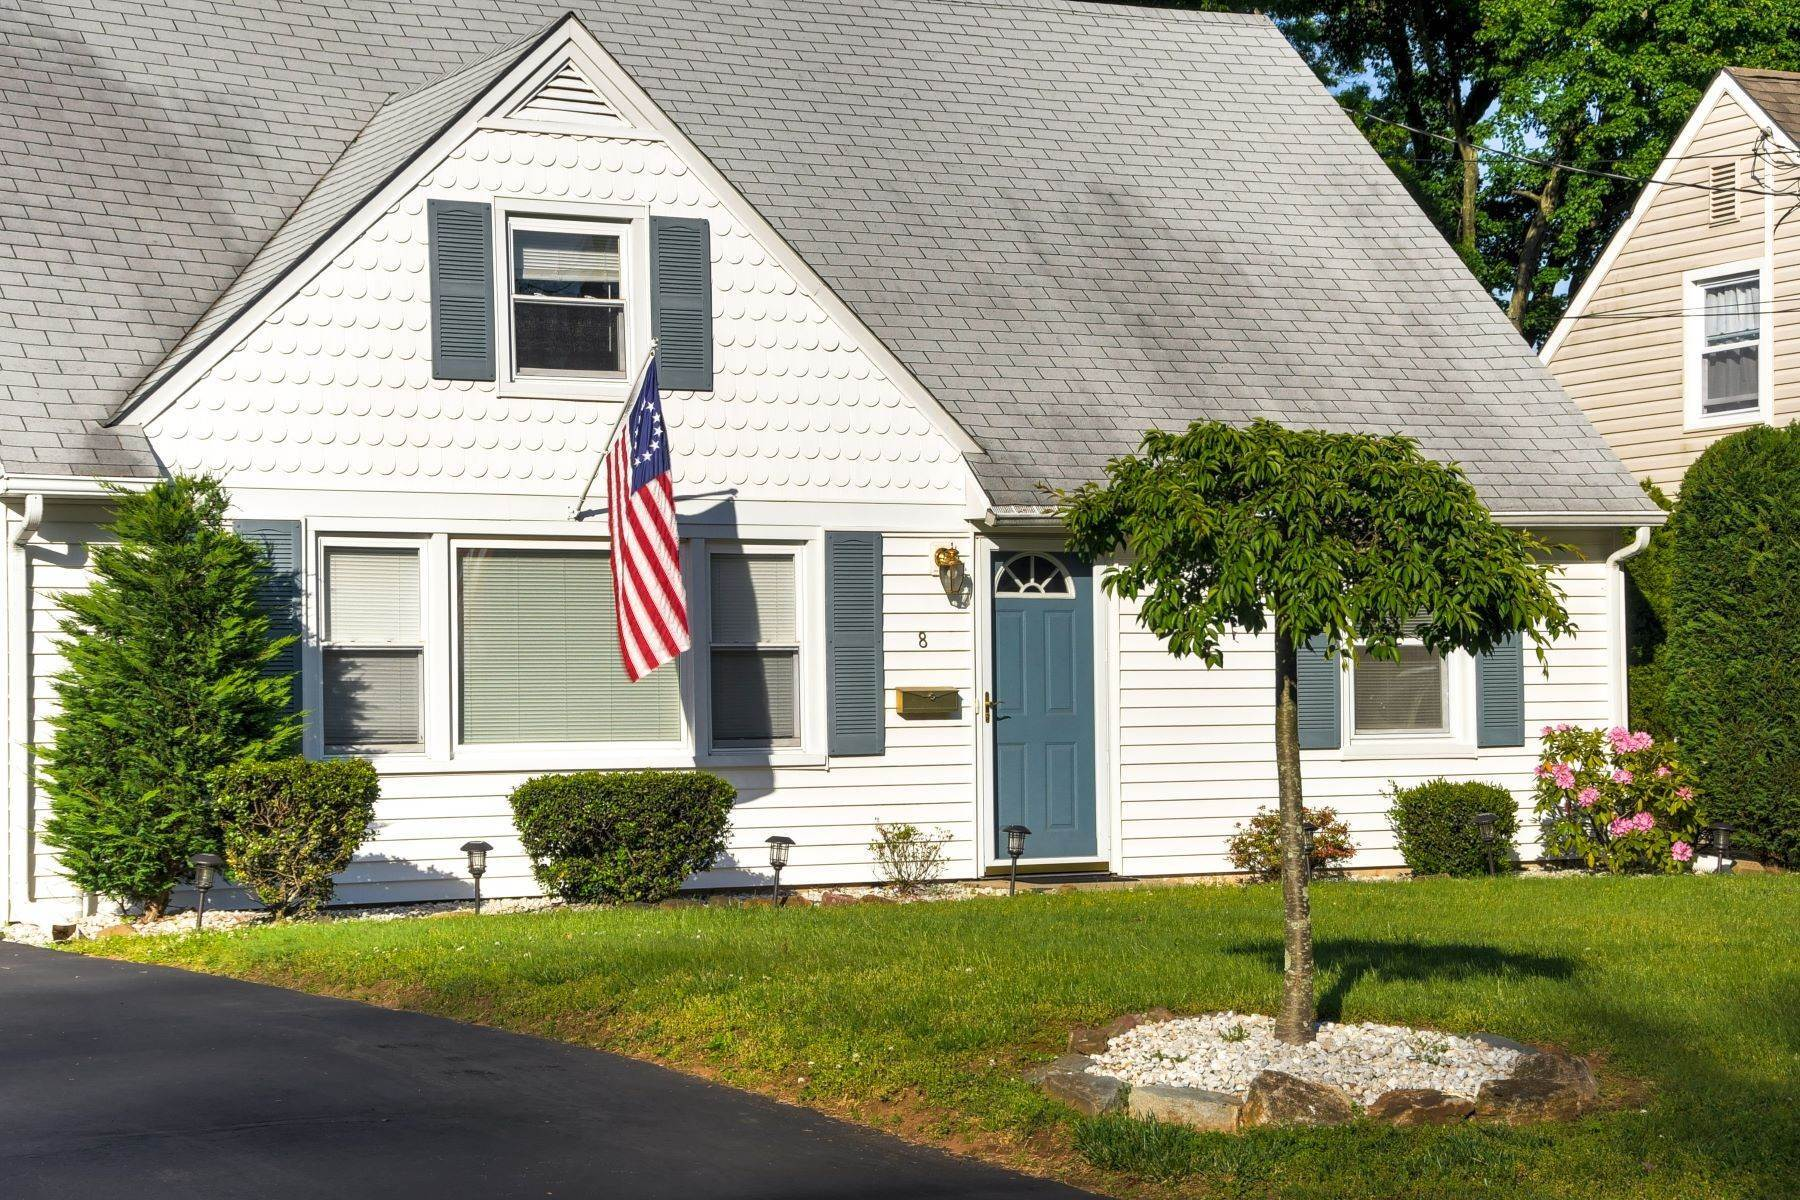 Single Family Homes for Sale at Charming Cape Cod 8 Tuttle Street Green Brook Township, New Jersey 08812 United States